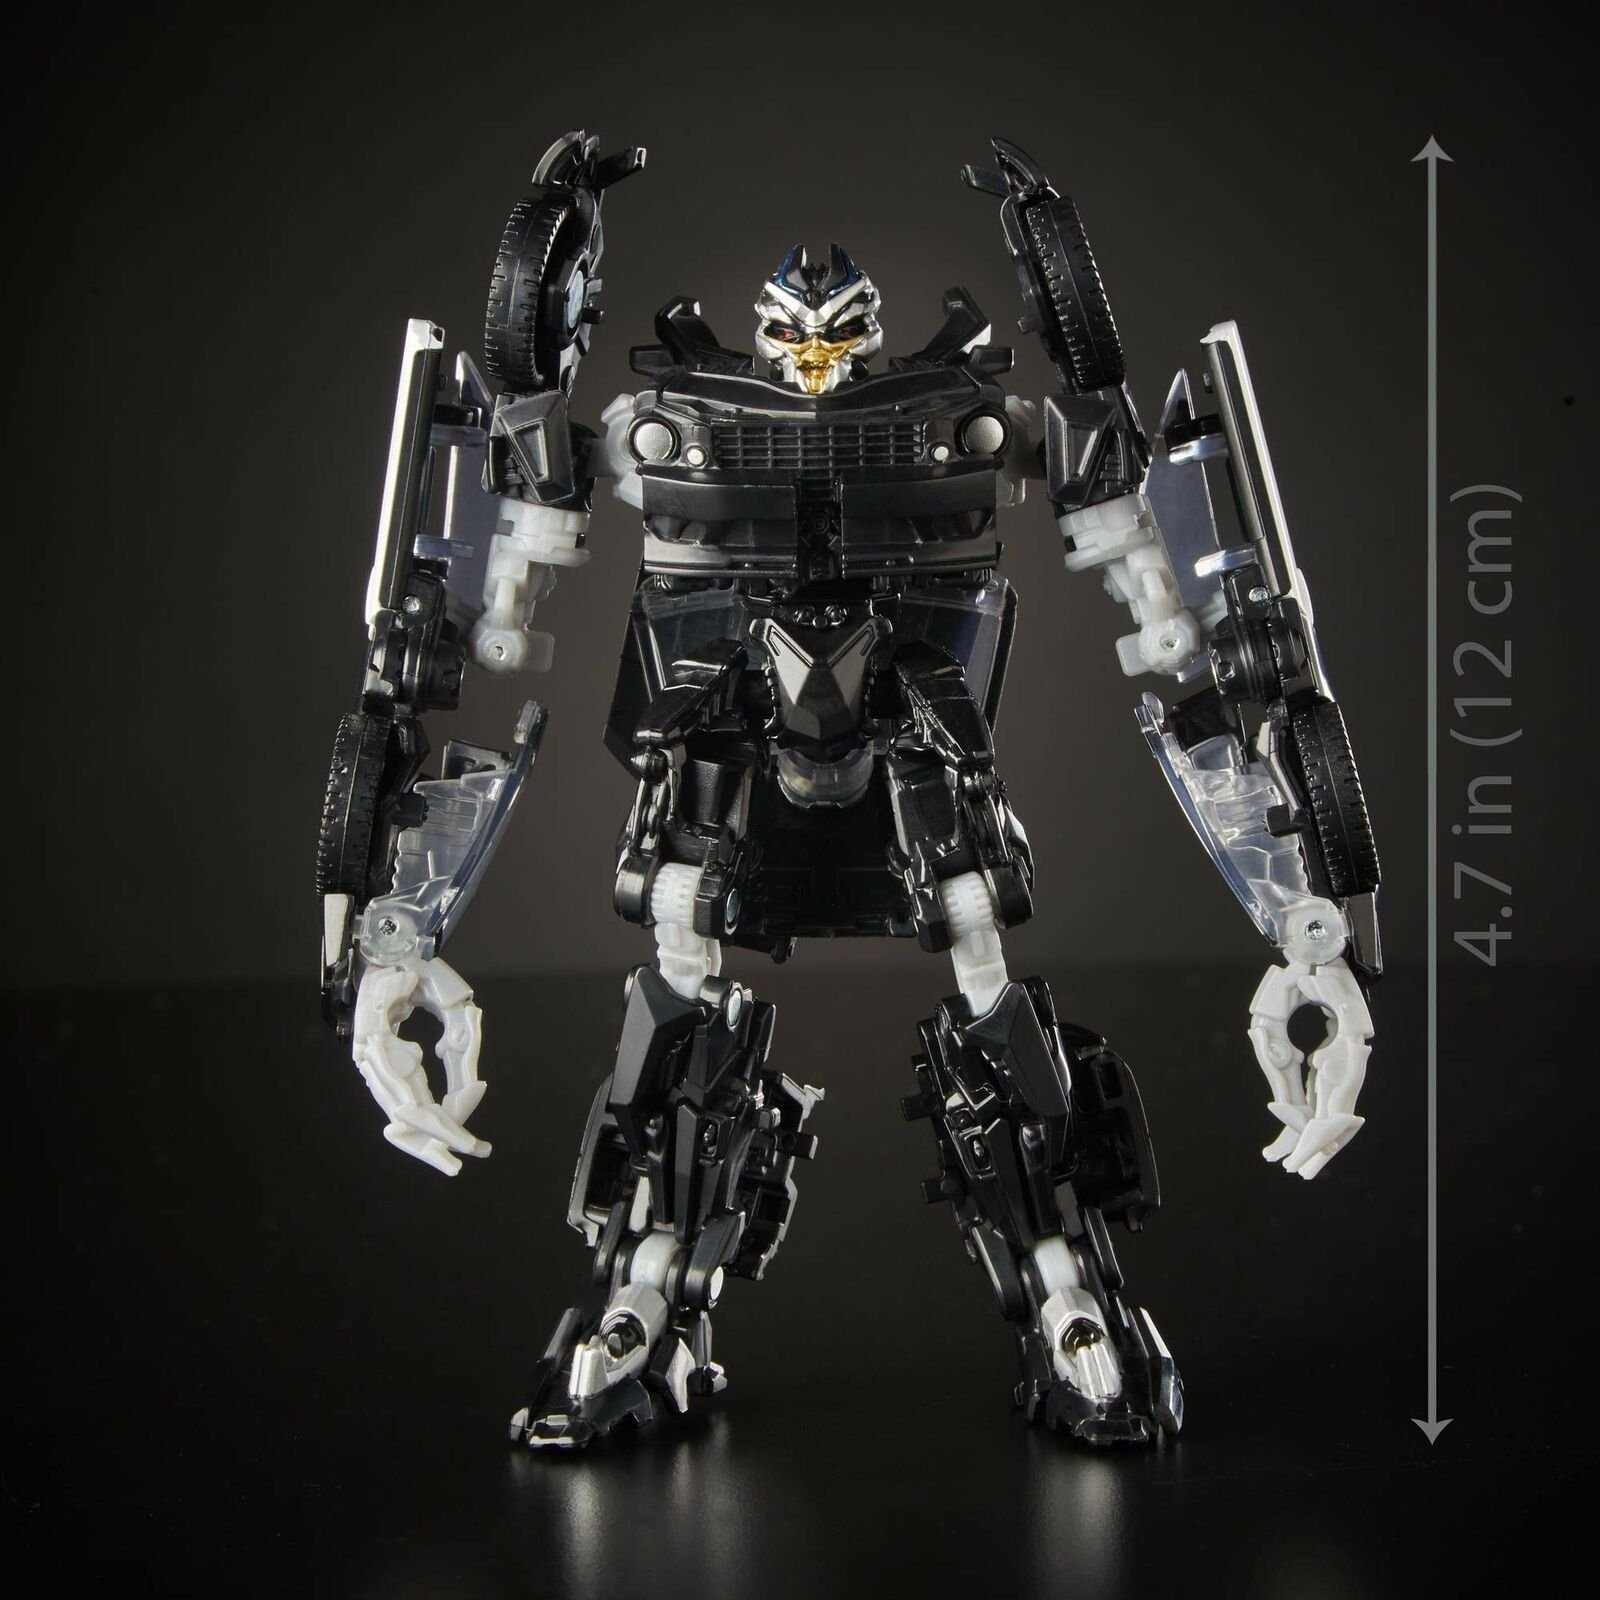 Transformers Studio Series 28 Deluxe Class Barricade Action Figure in stock